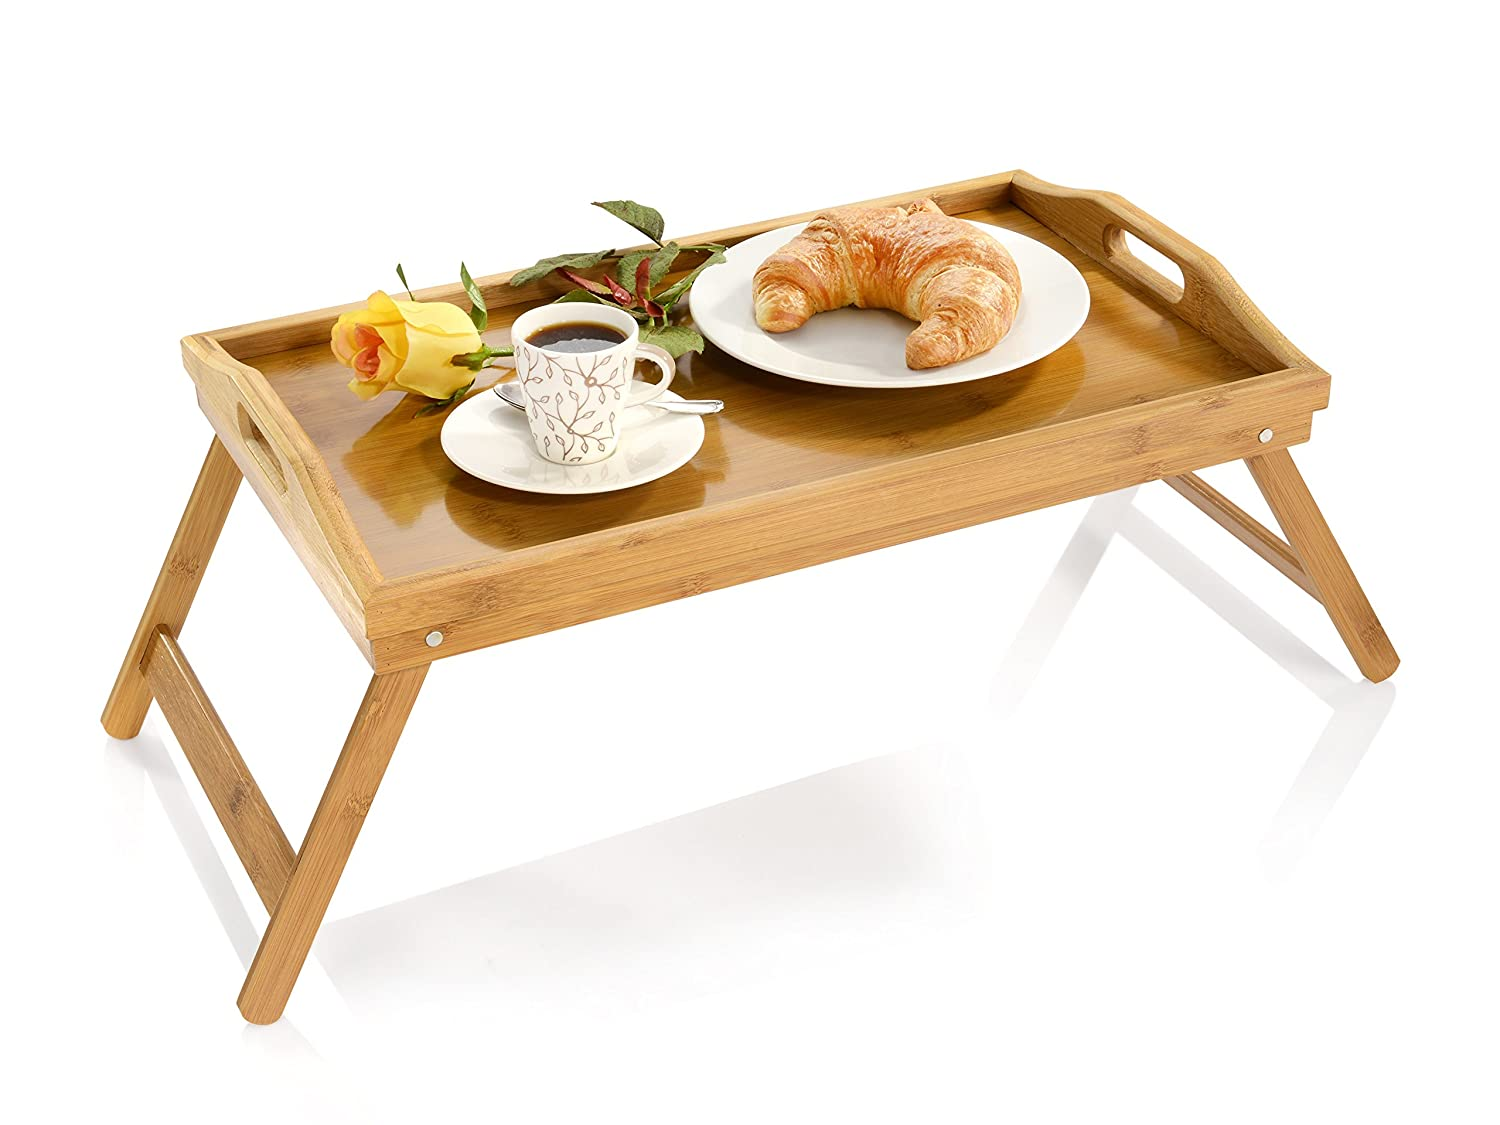 Folding Laptop Bed Tray Wooden Breakfast Serving Tray Table: Amazon.es: Hogar